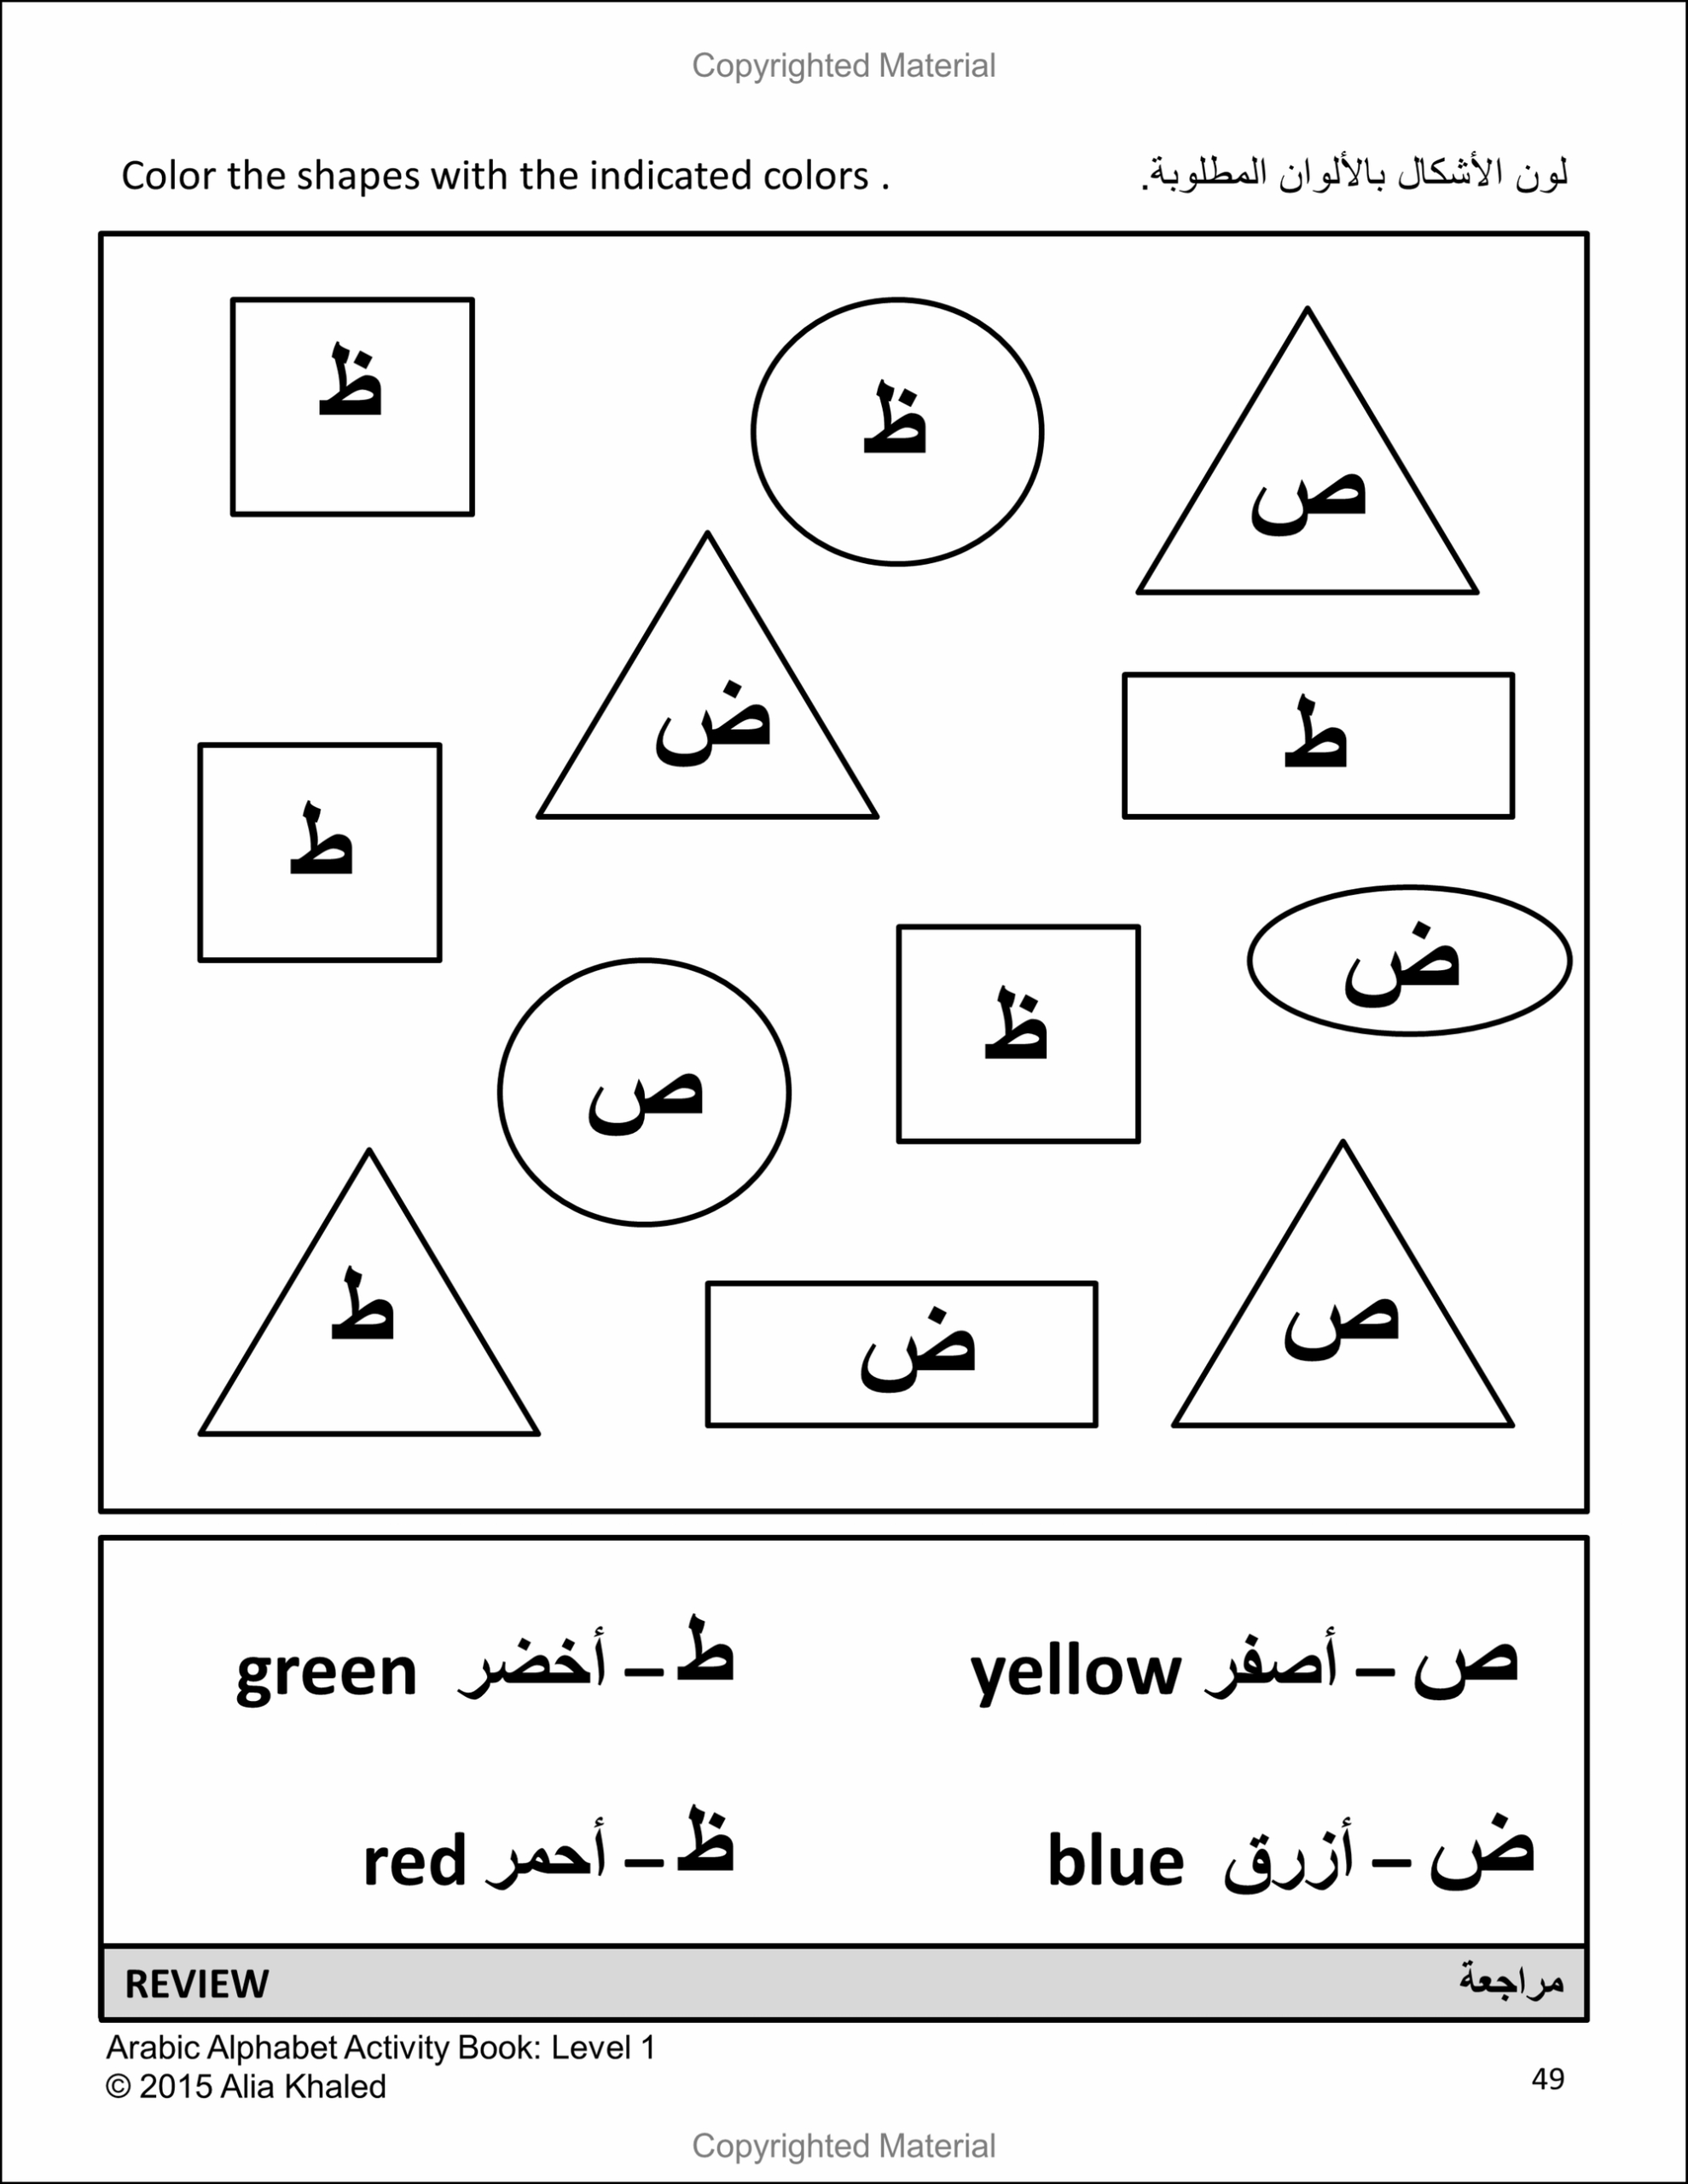 Learn Arabic! Have Fun! - Arabic Alphabet Activity Book for Arabic Alphabet Worksheets Grade 1